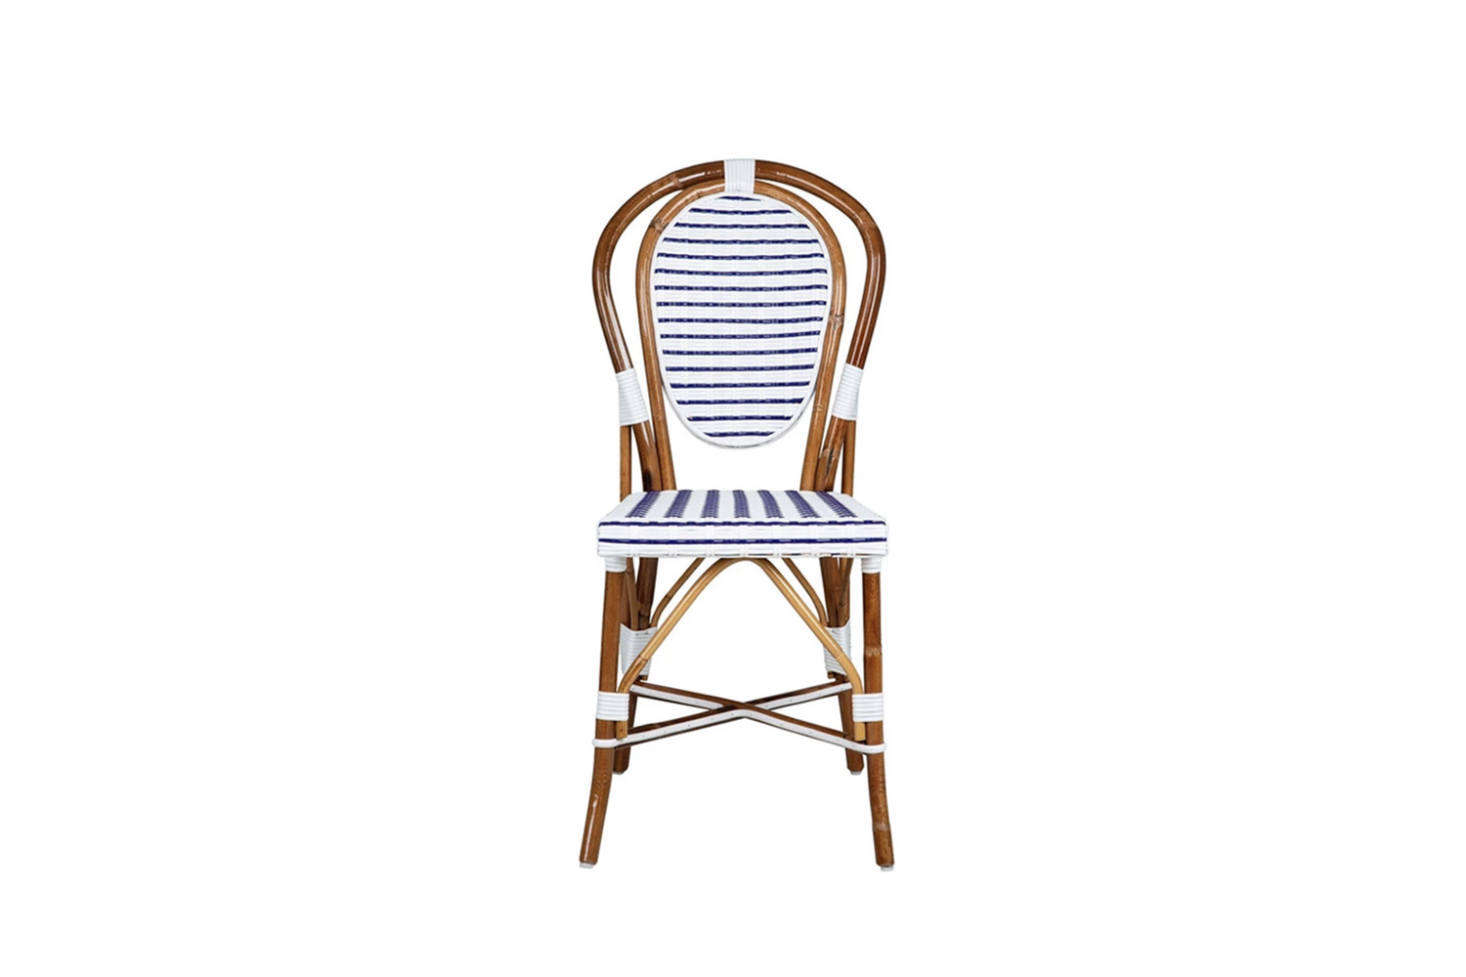 Maison Midi's White and Blue Mediterranean Bistro Chair has a classic bentwood hairpin silhouette. It's made in Italy of rattan and synthetic fiber; $295.95.